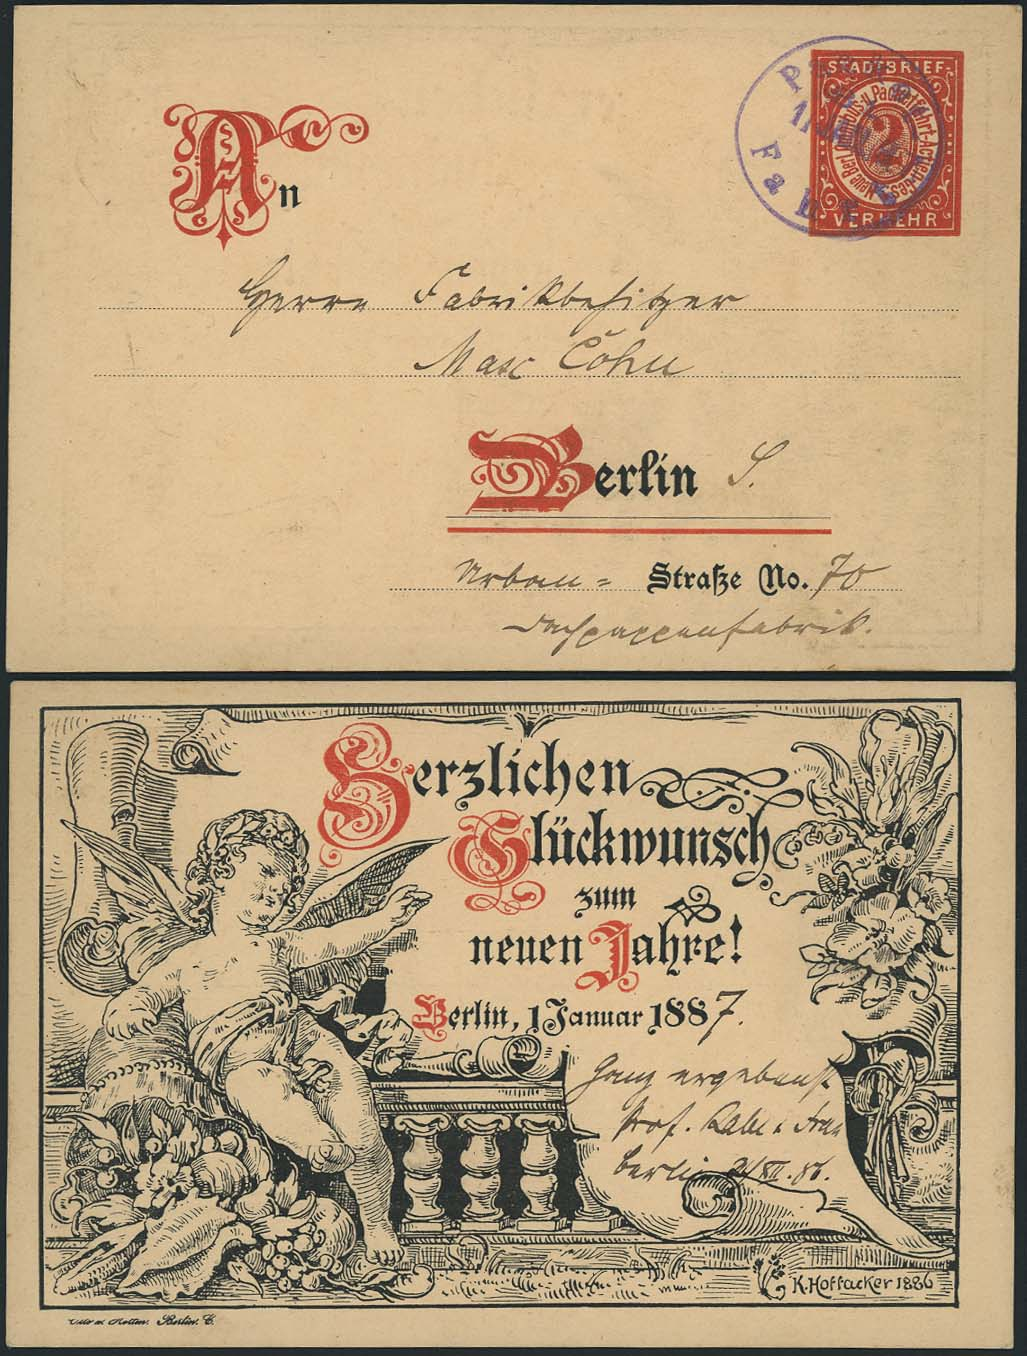 Lot 4188 - Deutsches Reich_Deutsche Privatpostanstalten A-Z  -  Auktionshaus Ulrich Felzmann GmbH & Co. KG Auction 170 International Autumn Auction 2020 Day 4